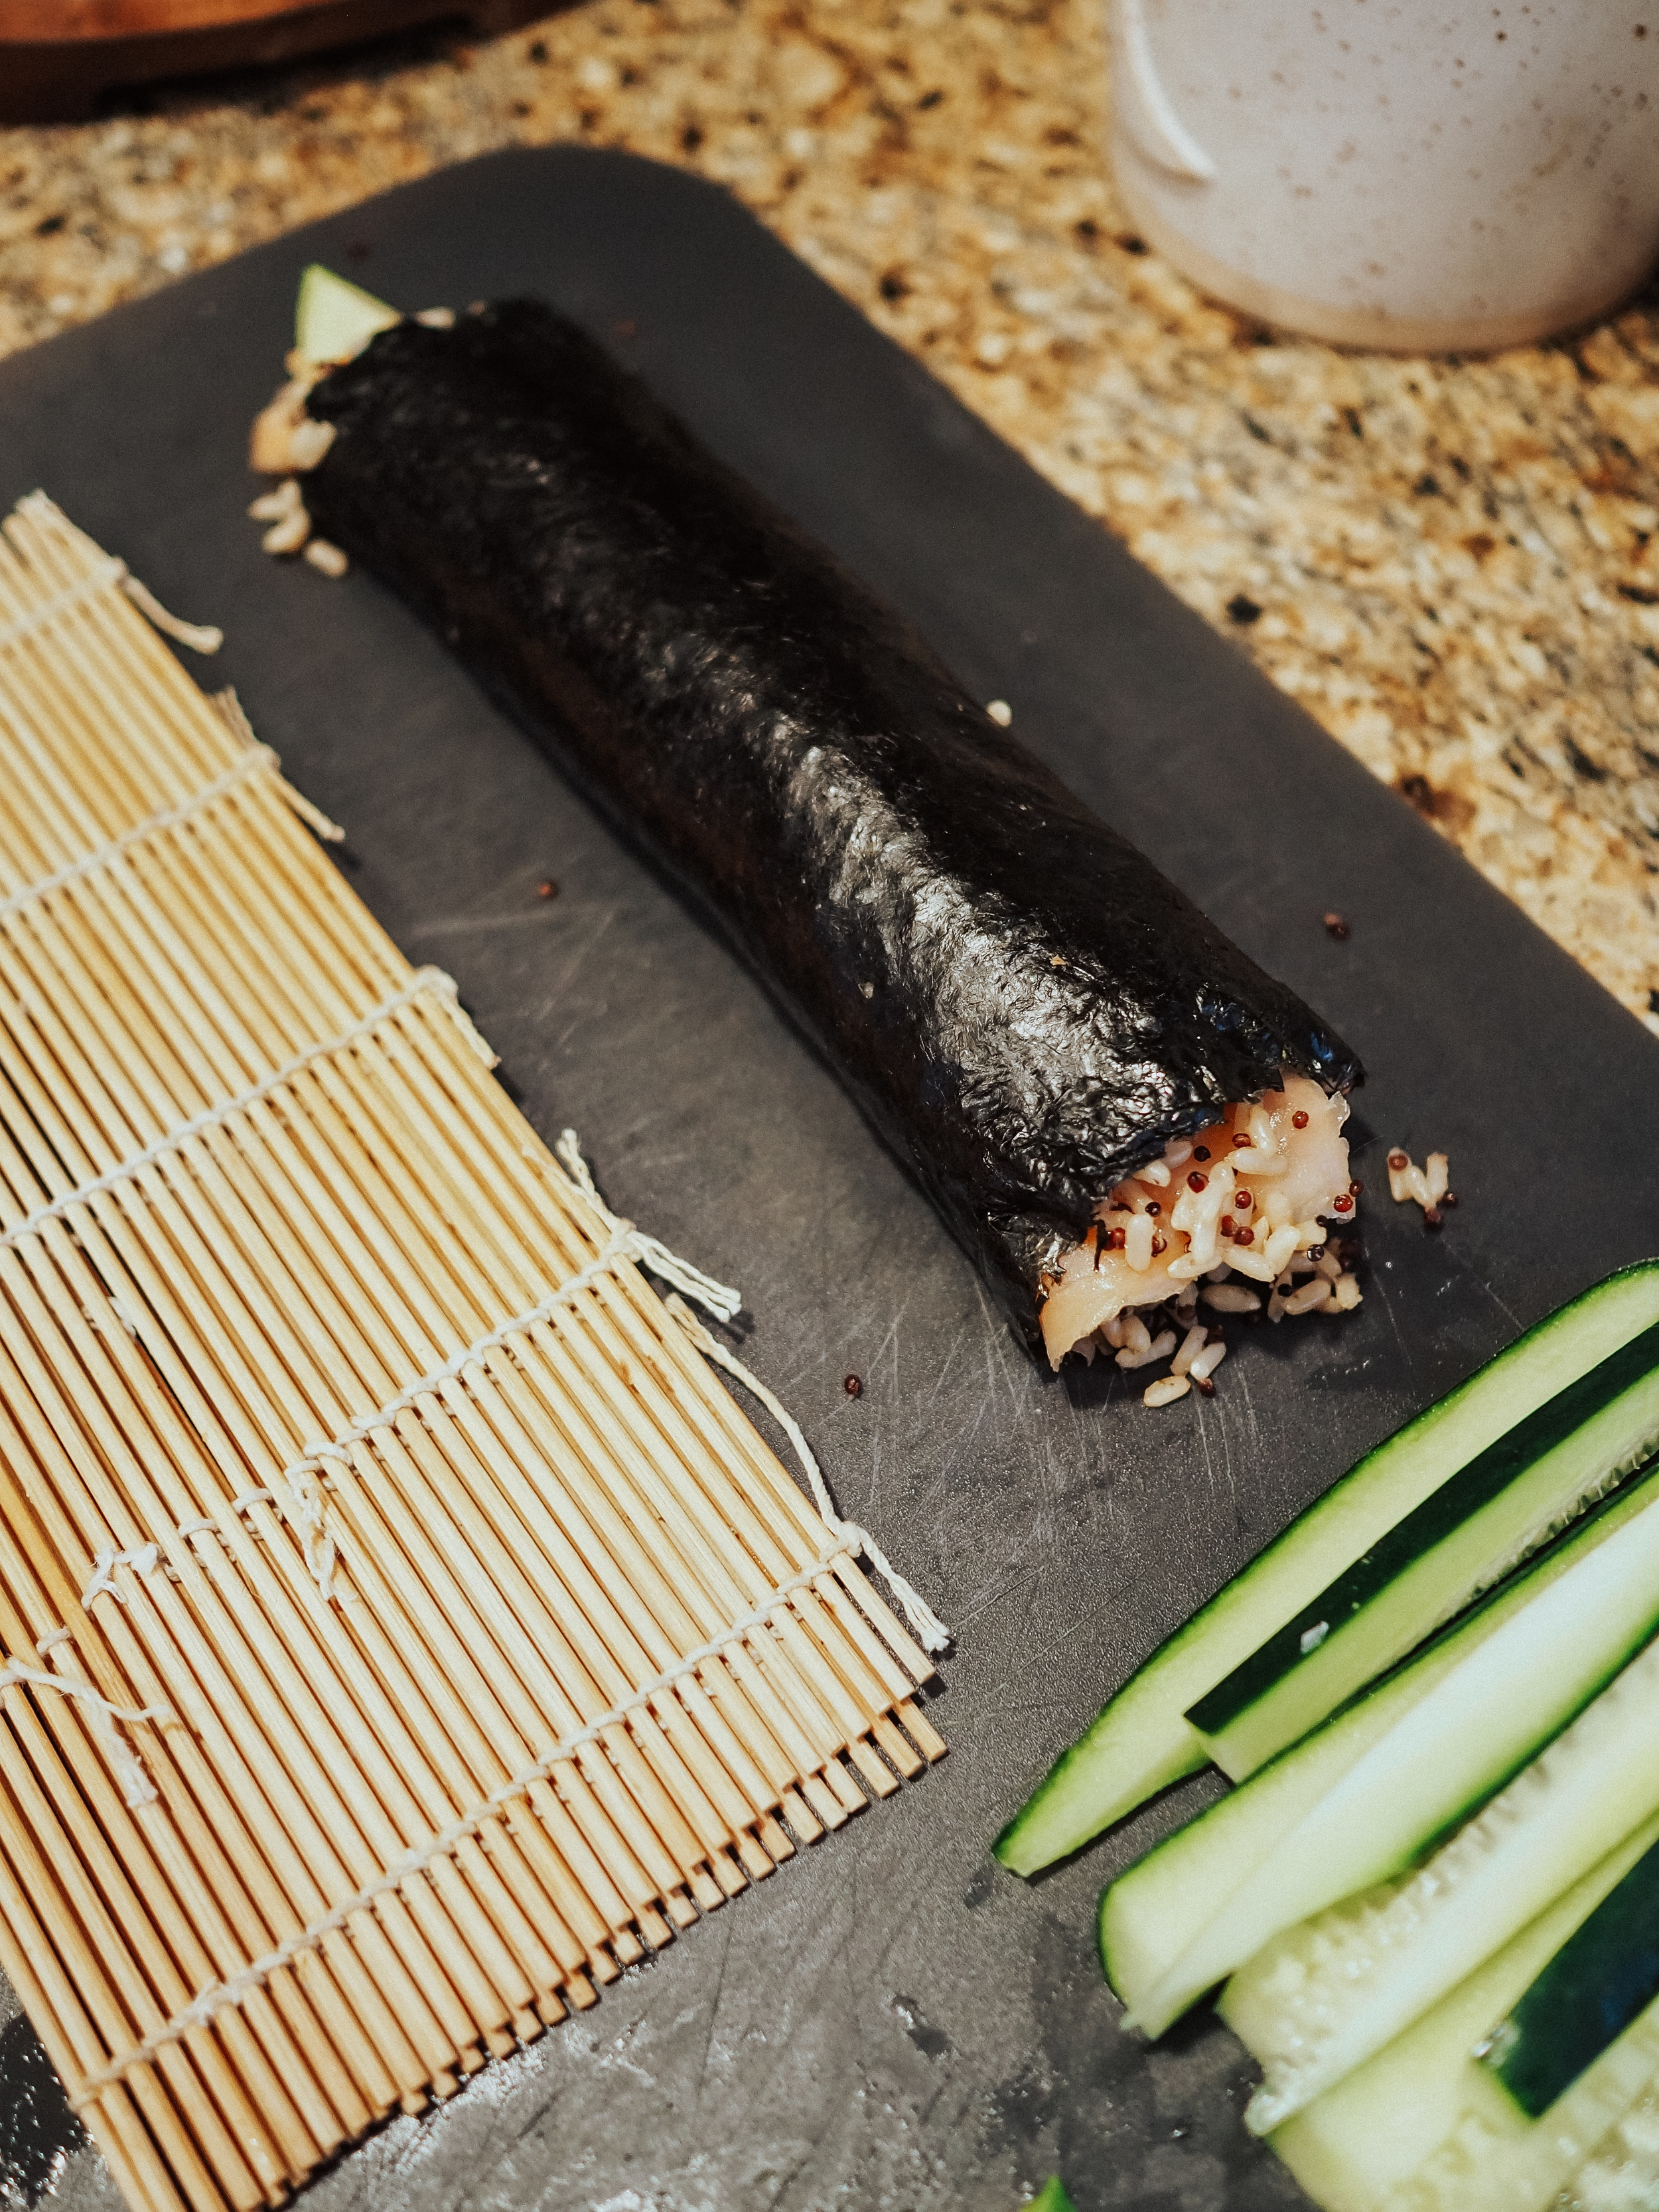 Make a healthy sushi burrito at home with this easy recipe! Sushi burritos are fun and easy to make DIY style at home.